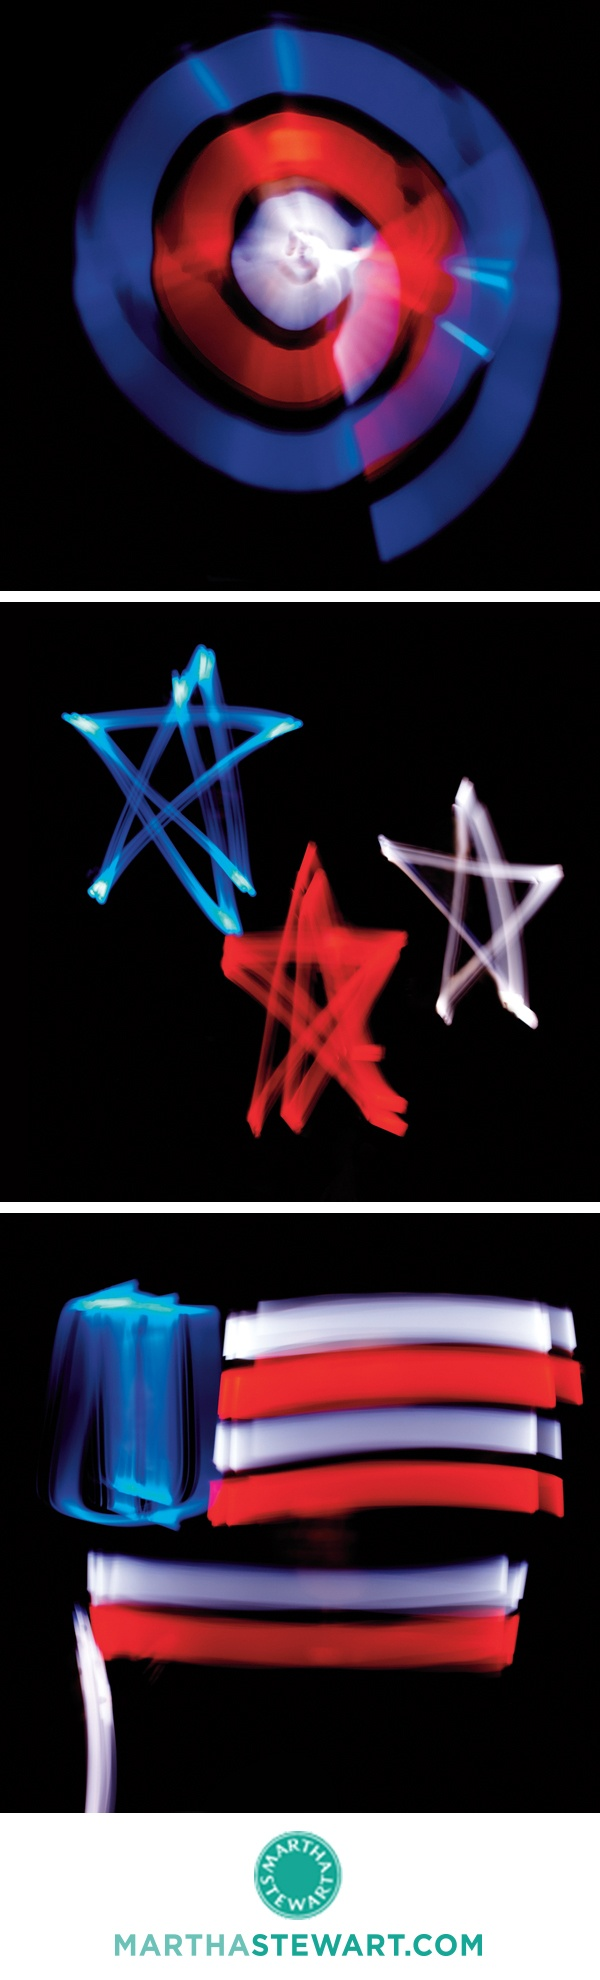 Create these patriotic photographs using your camera and glow-sticks.: July Photographers, Photographers Create, Wedding Ideas, July Wedding, Patriots Photographers, Photo Fun, Fun Photographers, Clever Ideas Diy